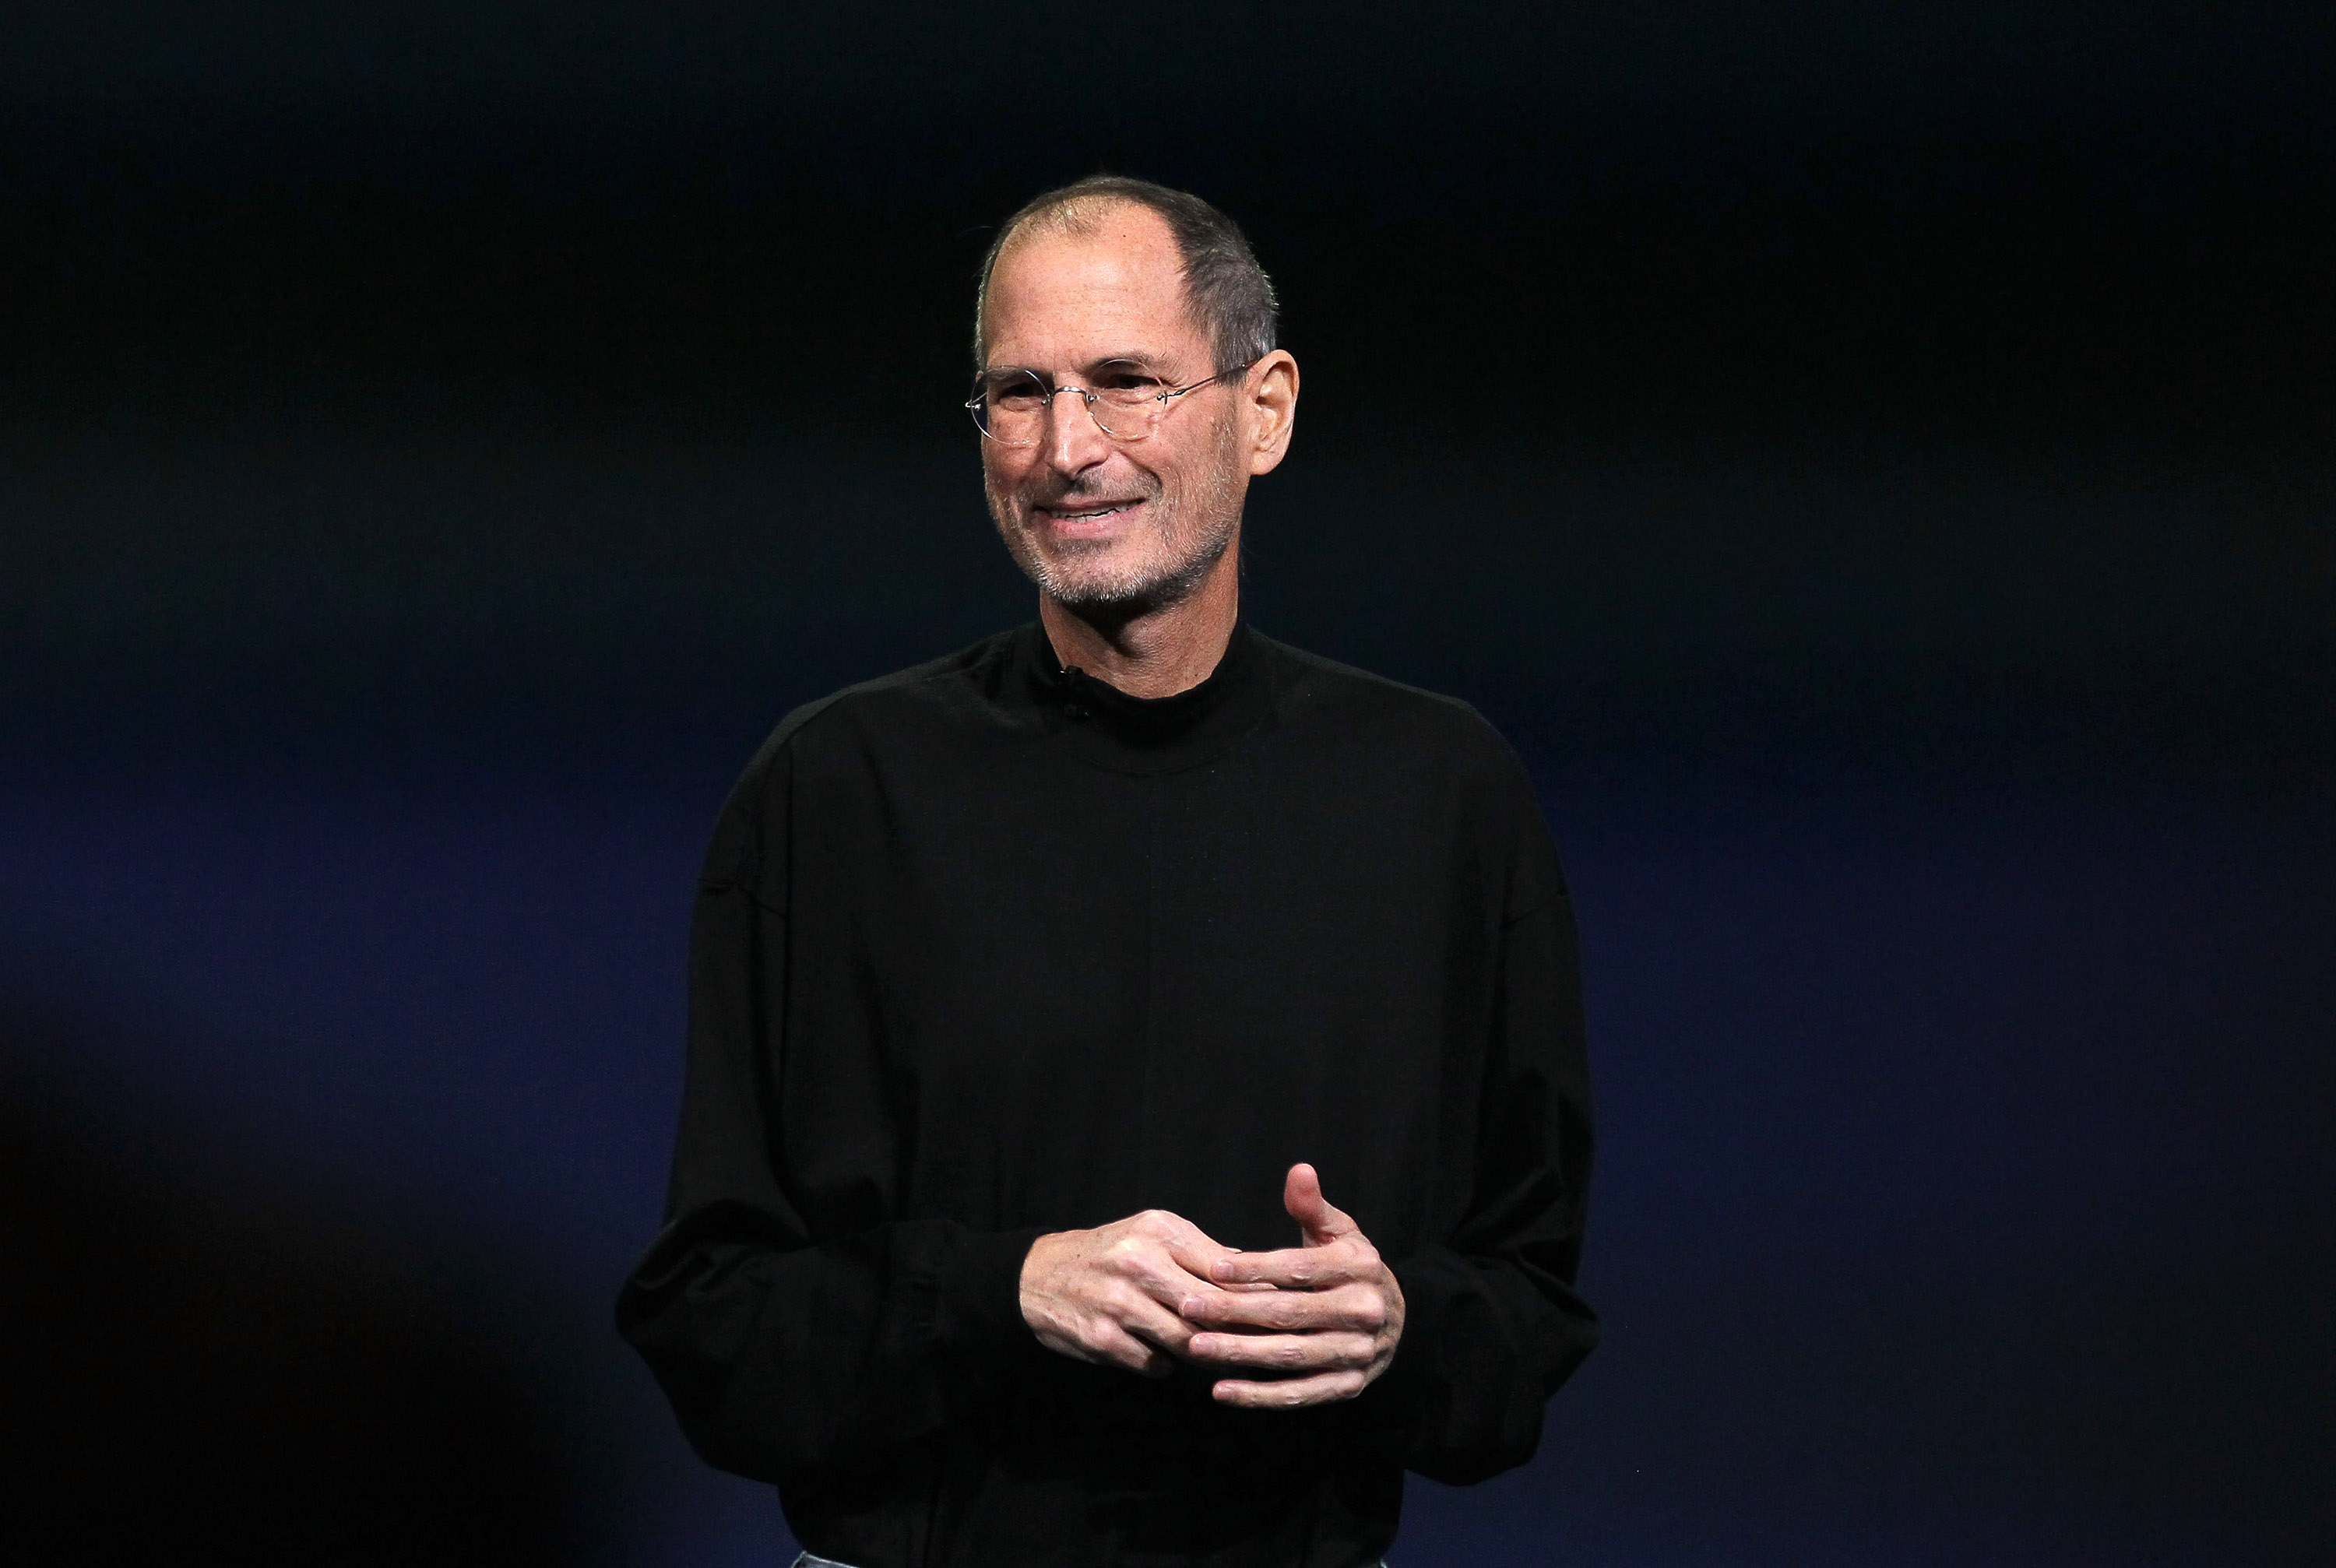 Apple CEO Steve Jobs speaks during an Apple Special event to unveil the new iPad 2 at the Yerba Buena Center for the Arts on March 2, 2011 in San Francisco.